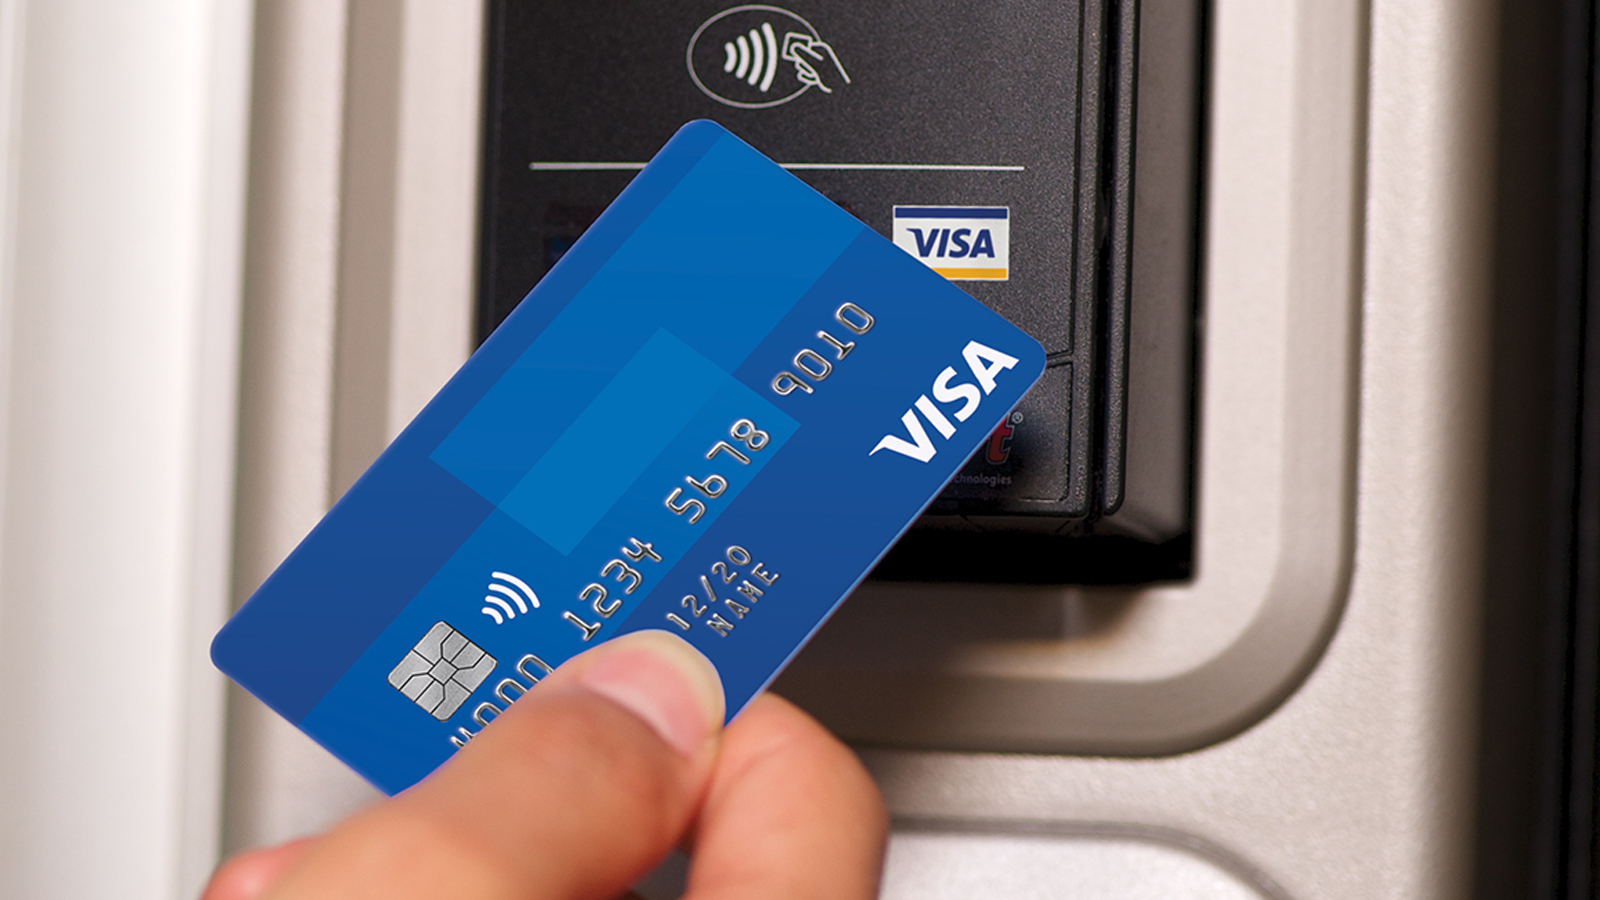 Tapping Visa card  with Visa's contactless payments system.